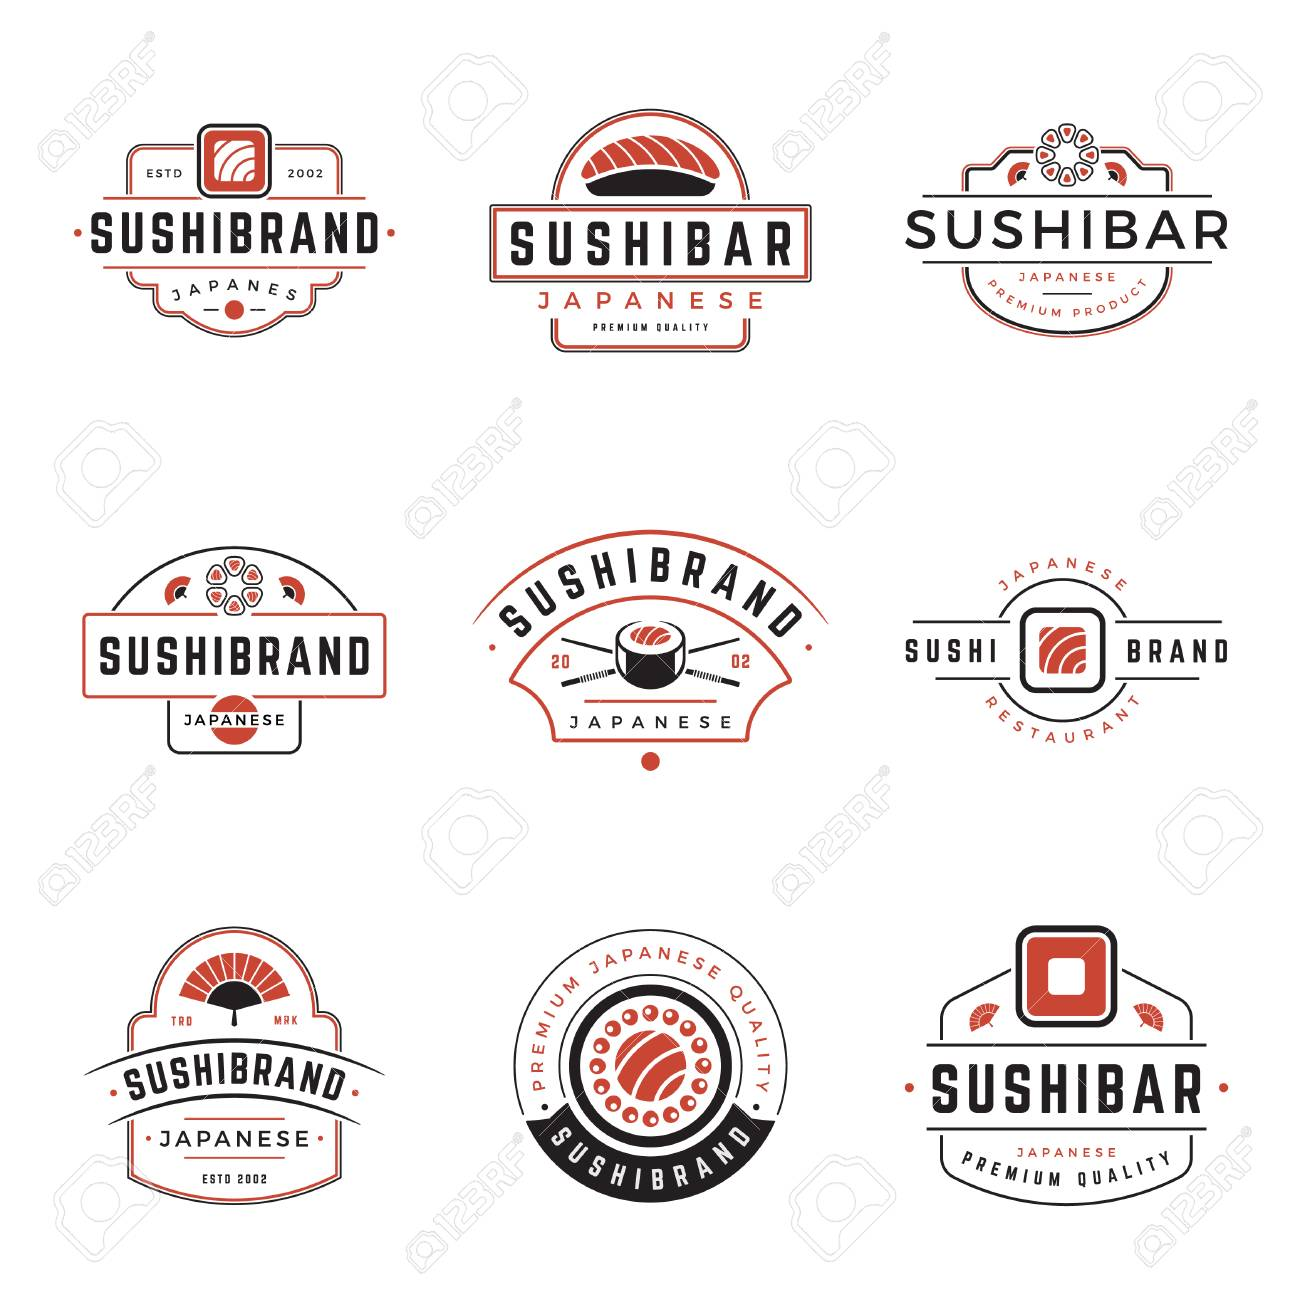 Sushi shop logos templates set vector object and icons for sushi sushi shop logos templates set vector object and icons for sushi labels or badges buycottarizona Image collections